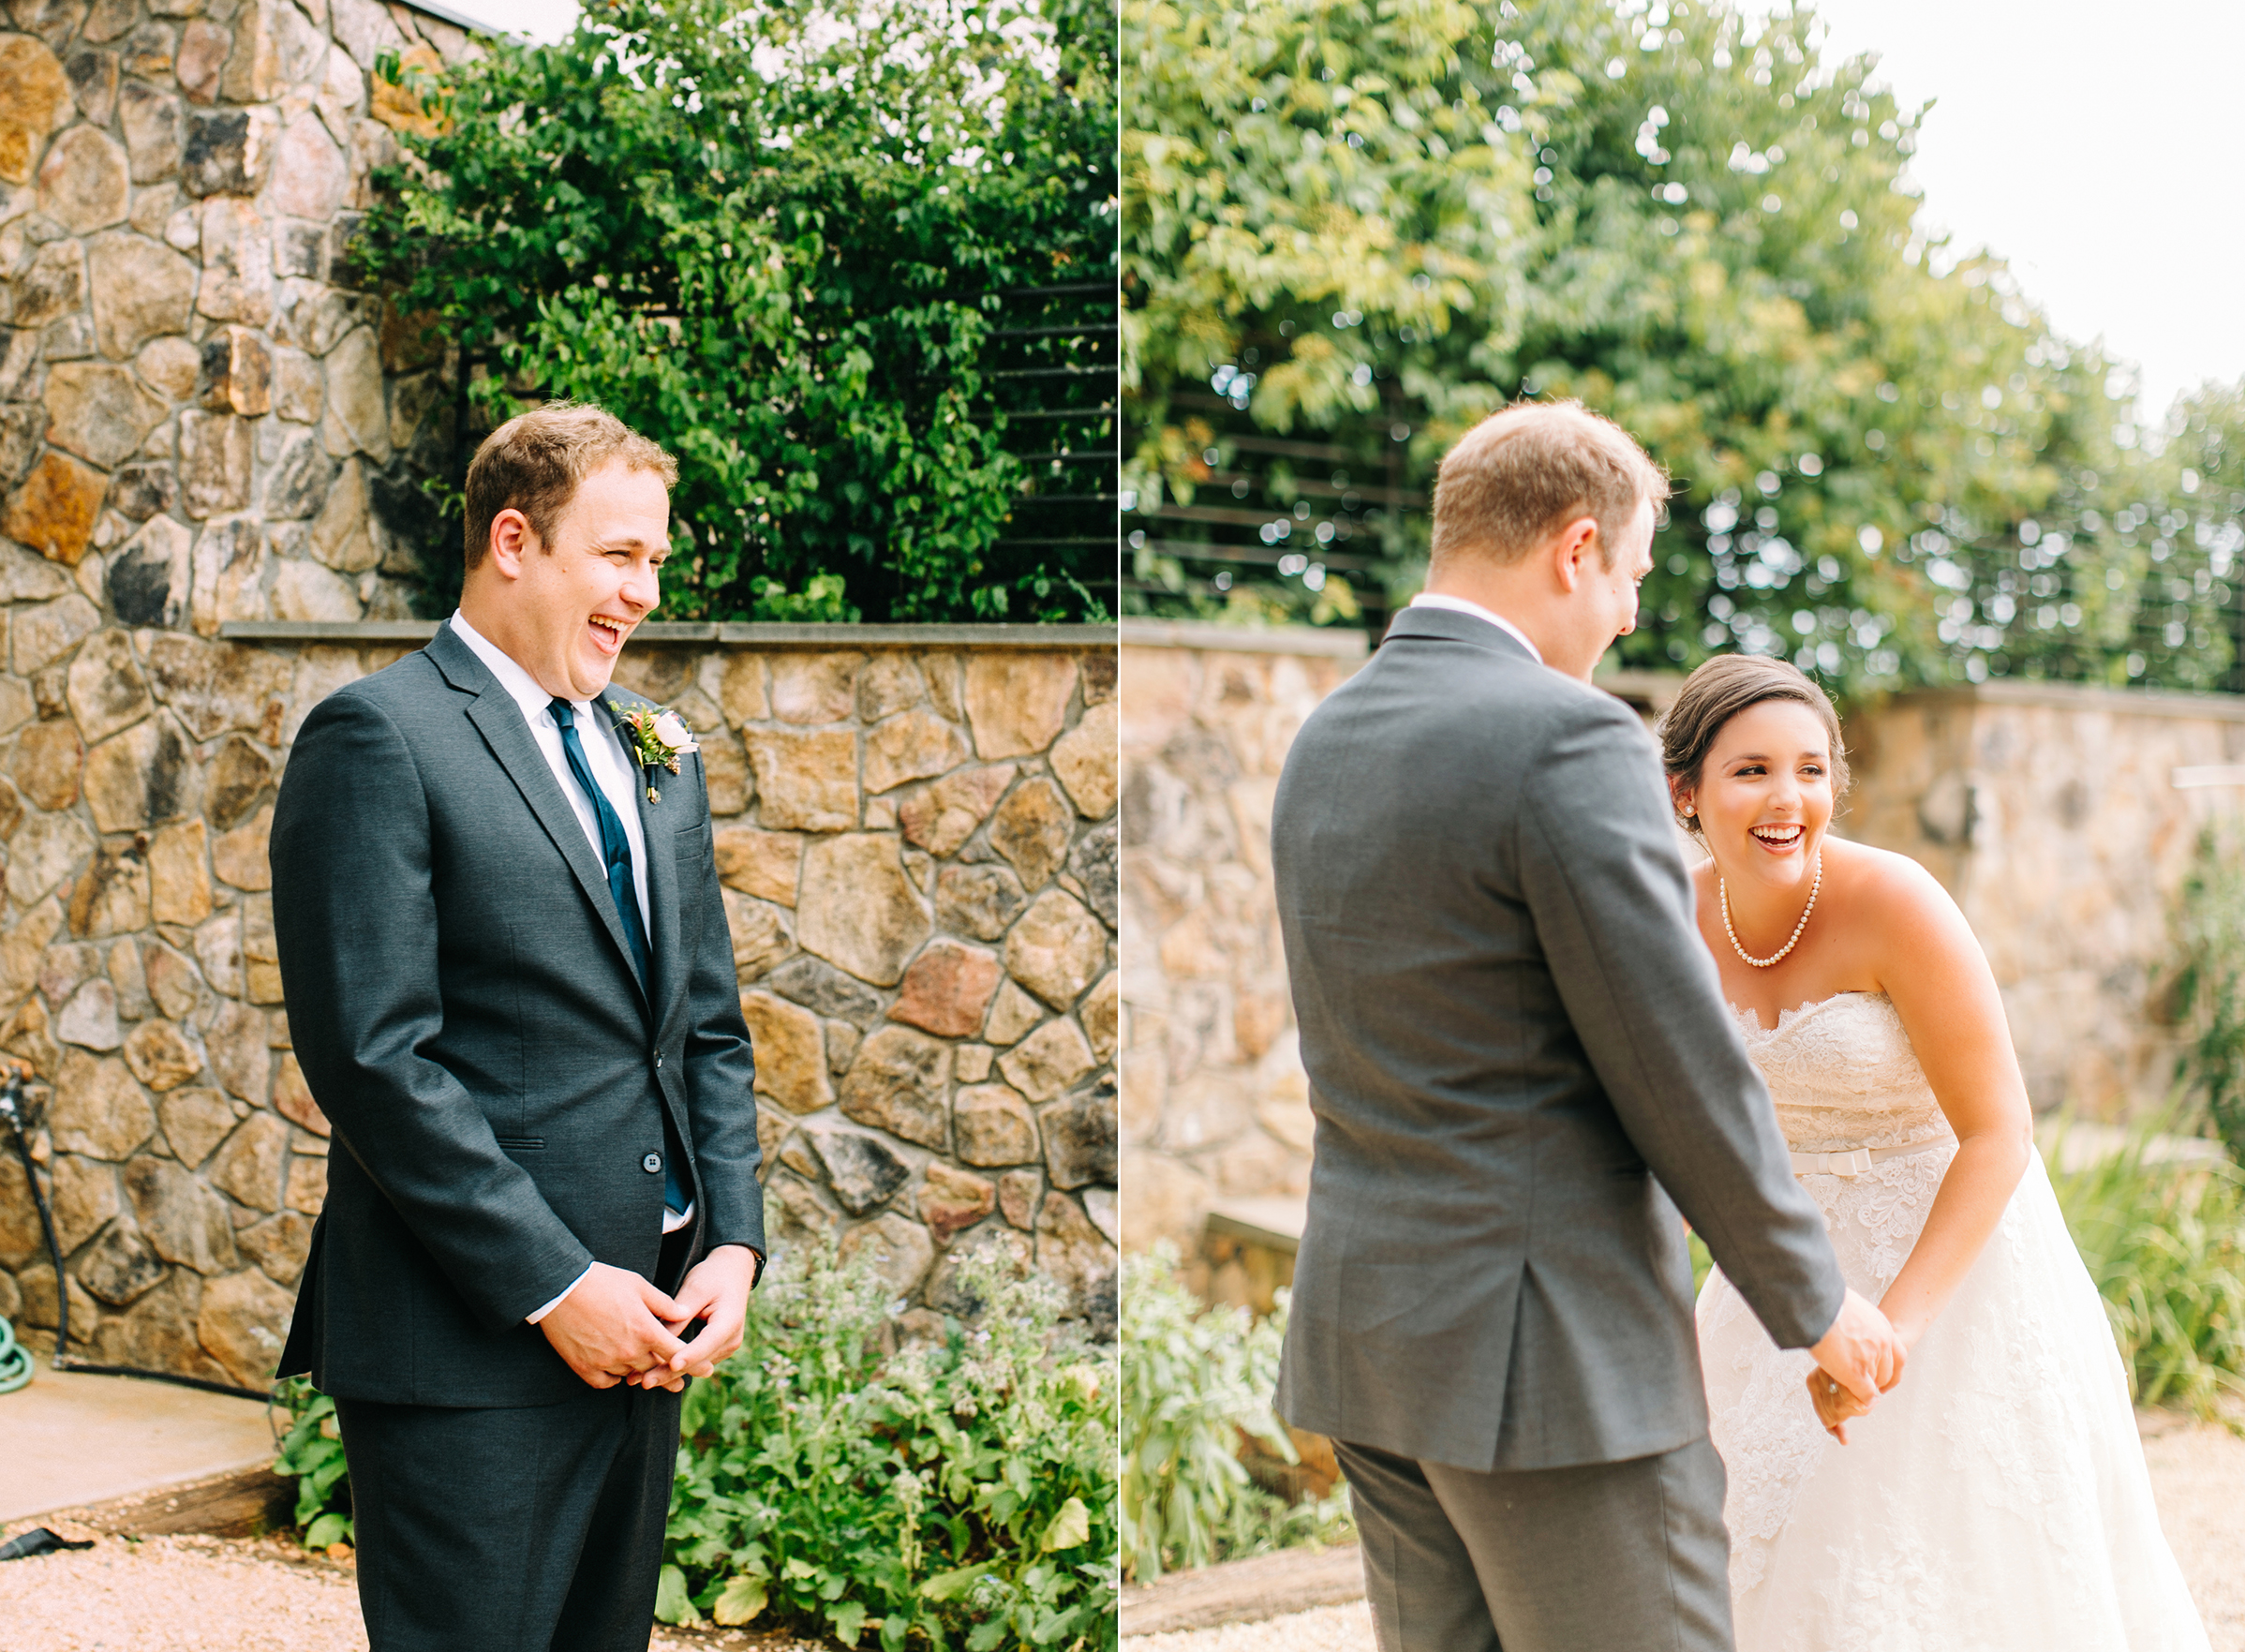 katie stoops photography-pippin hill-ashley baber weddings09.jpg